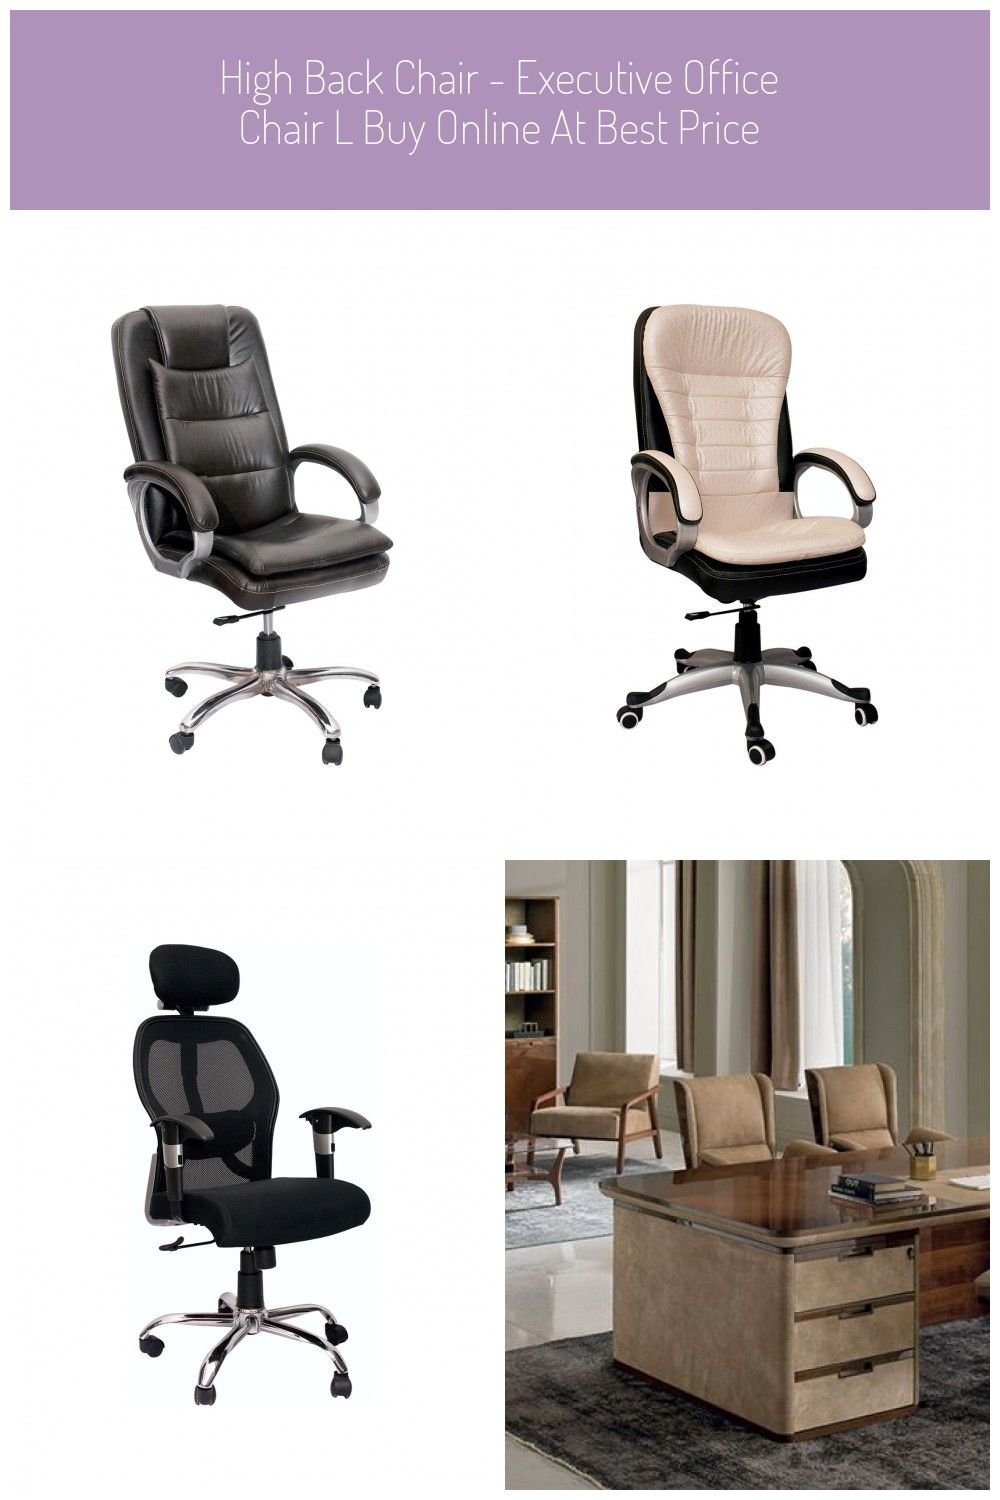 High Back Chair Executive Office Chair L Buy Online At